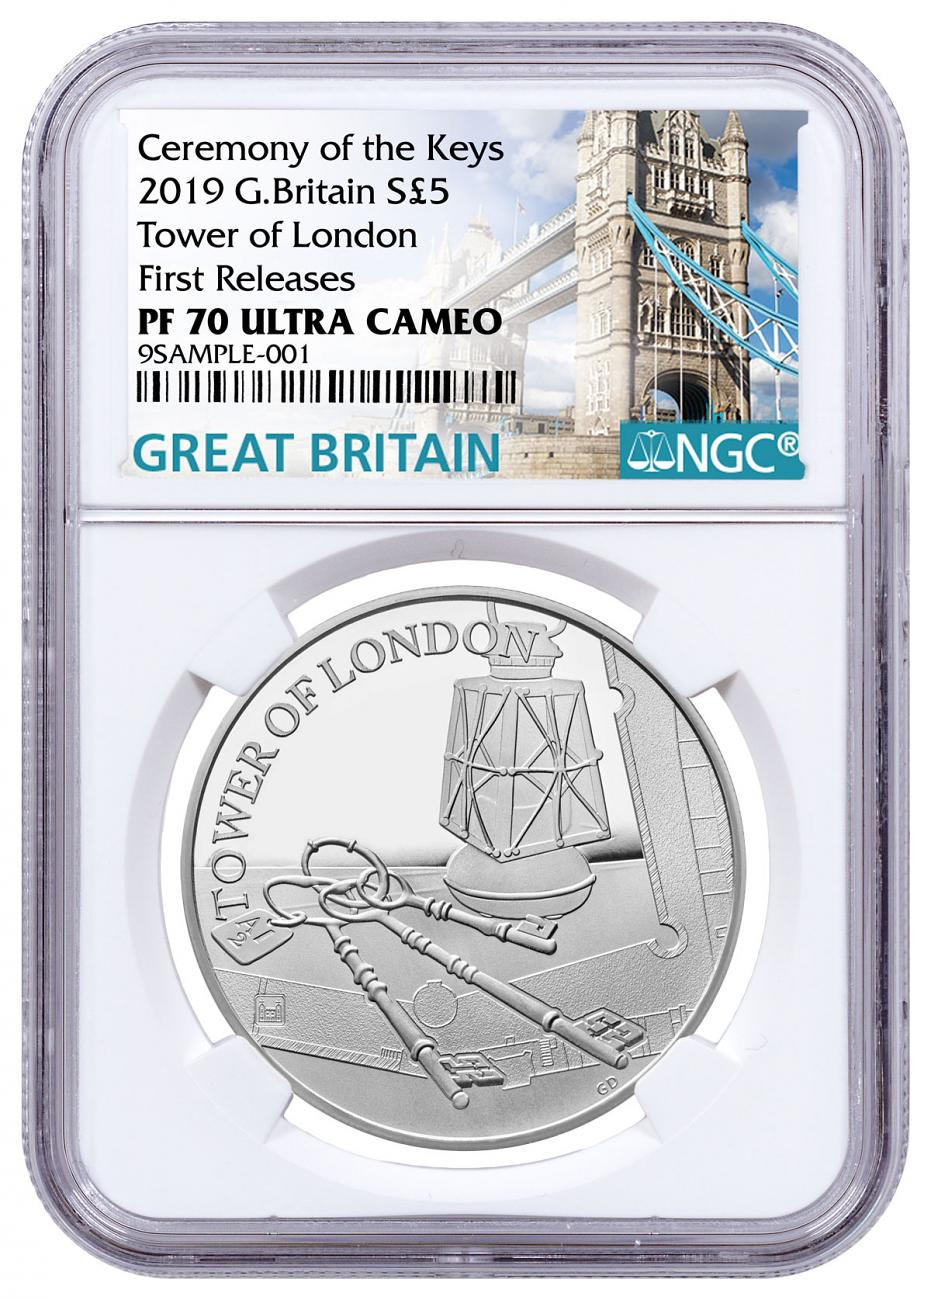 2019 Great Britain Tower of London - The Keys Silver Proof £5 Coin NGC PF70 UC FR Tower Bridge Label